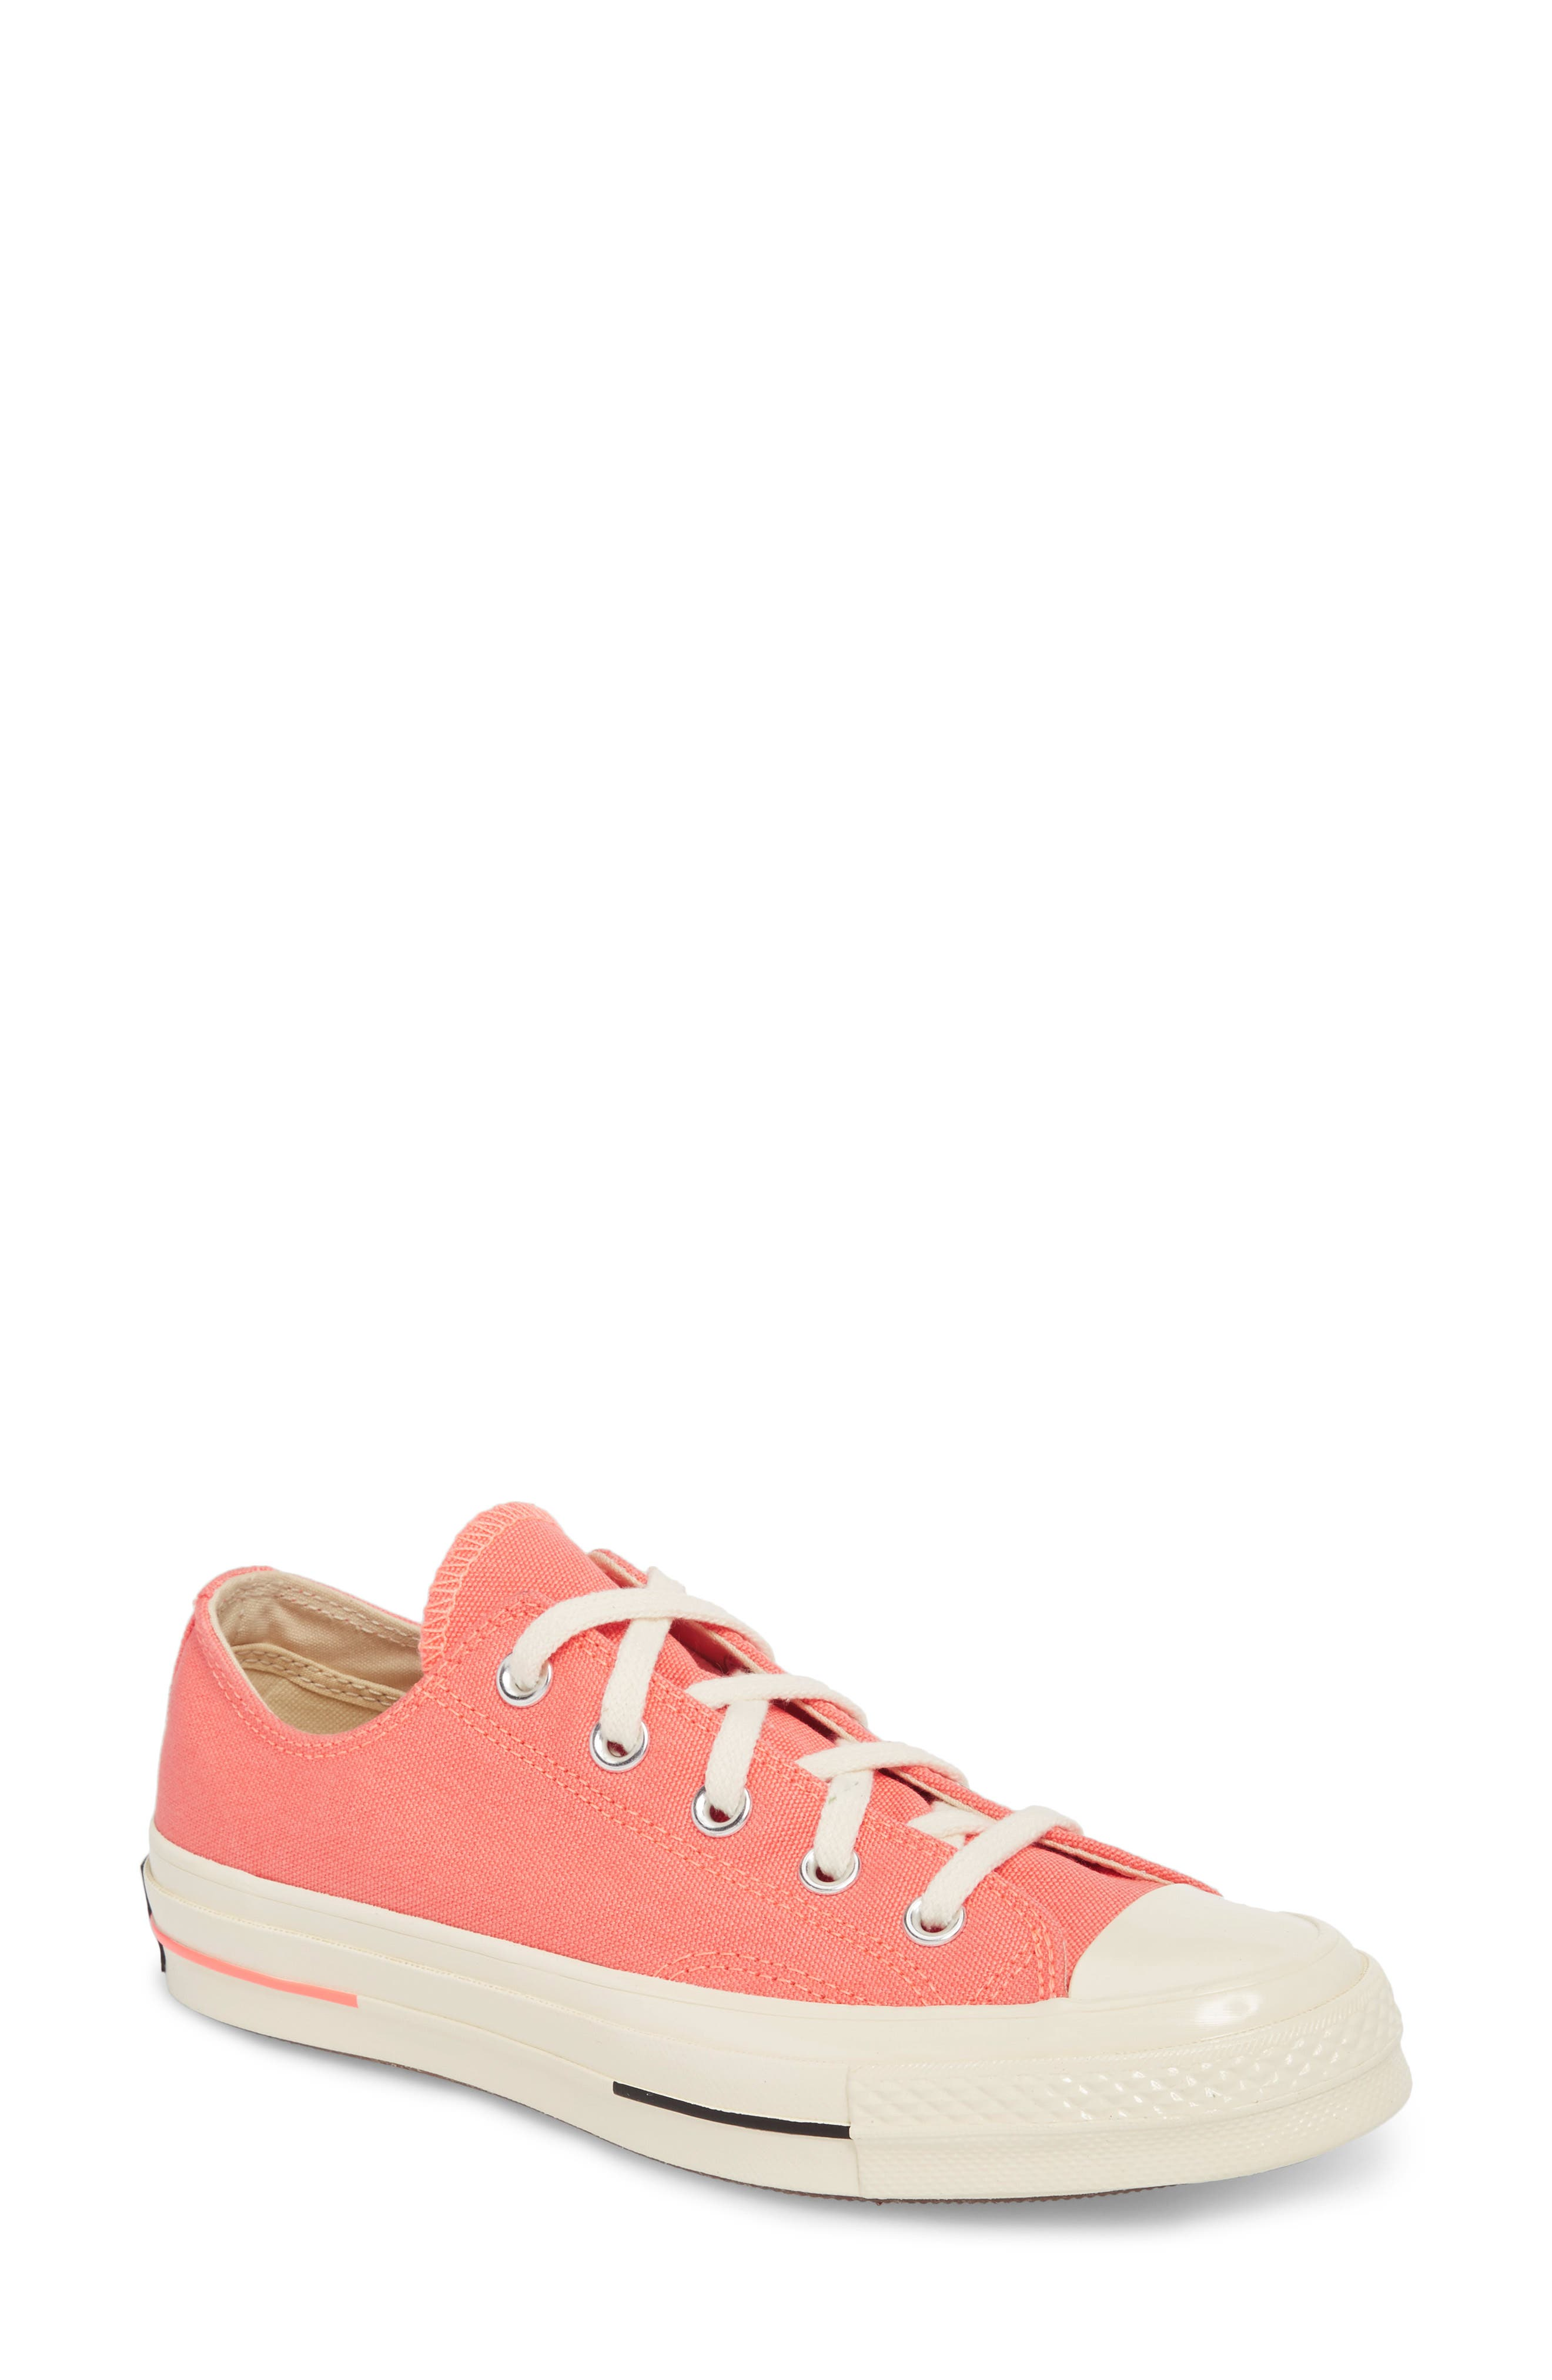 Chuck Taylor<sup>®</sup> All Star<sup>®</sup> '70s Brights Low Top Sneaker,                         Main,                         color, CRIMSON PULSE